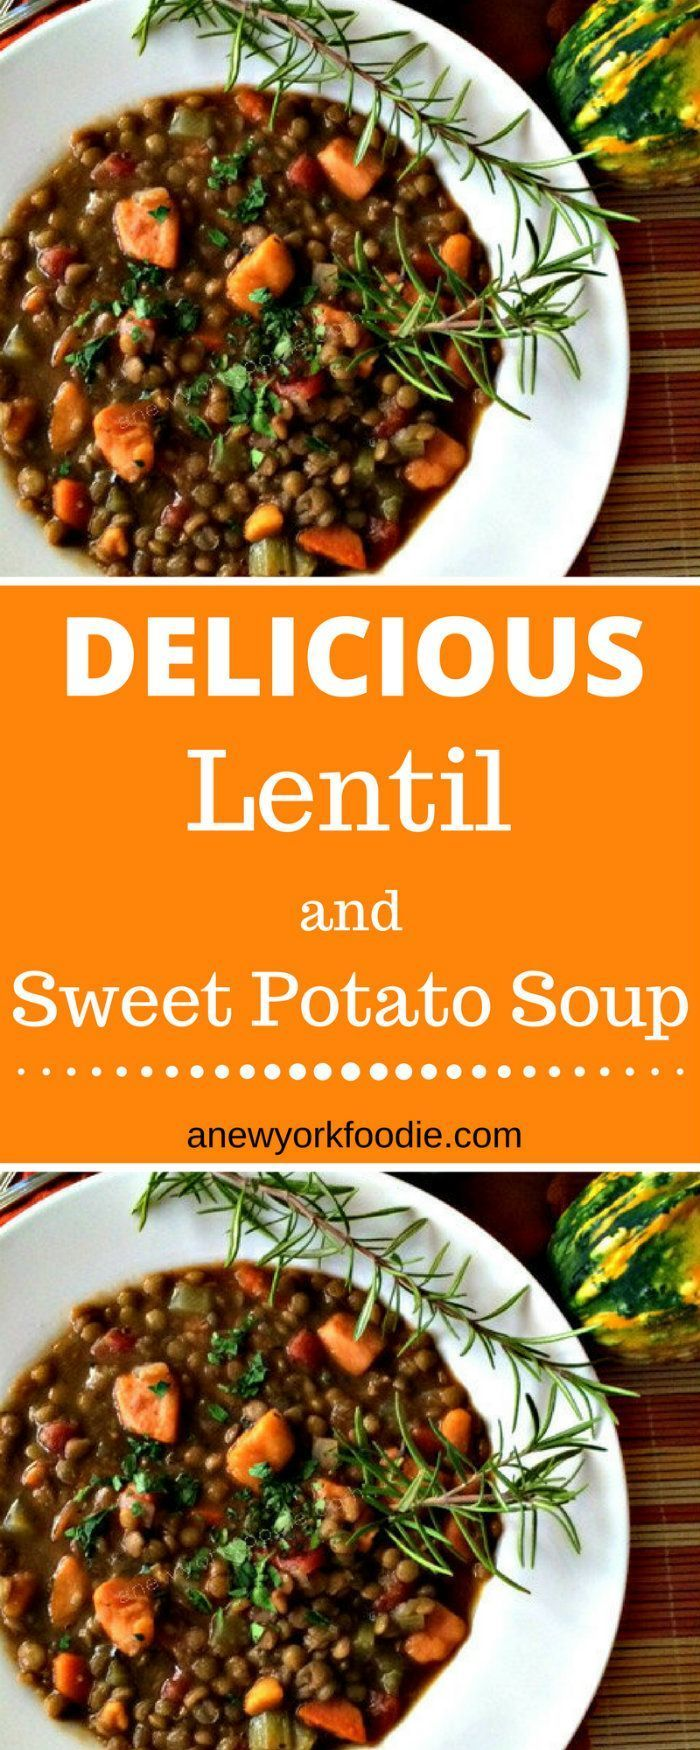 Delicious Lentil and Sweet Potato Soup - Seriously flavorful and delicious! A great way to use up your sweet potatoes.   #soups #autumn #autumnrecipes #vegetarian